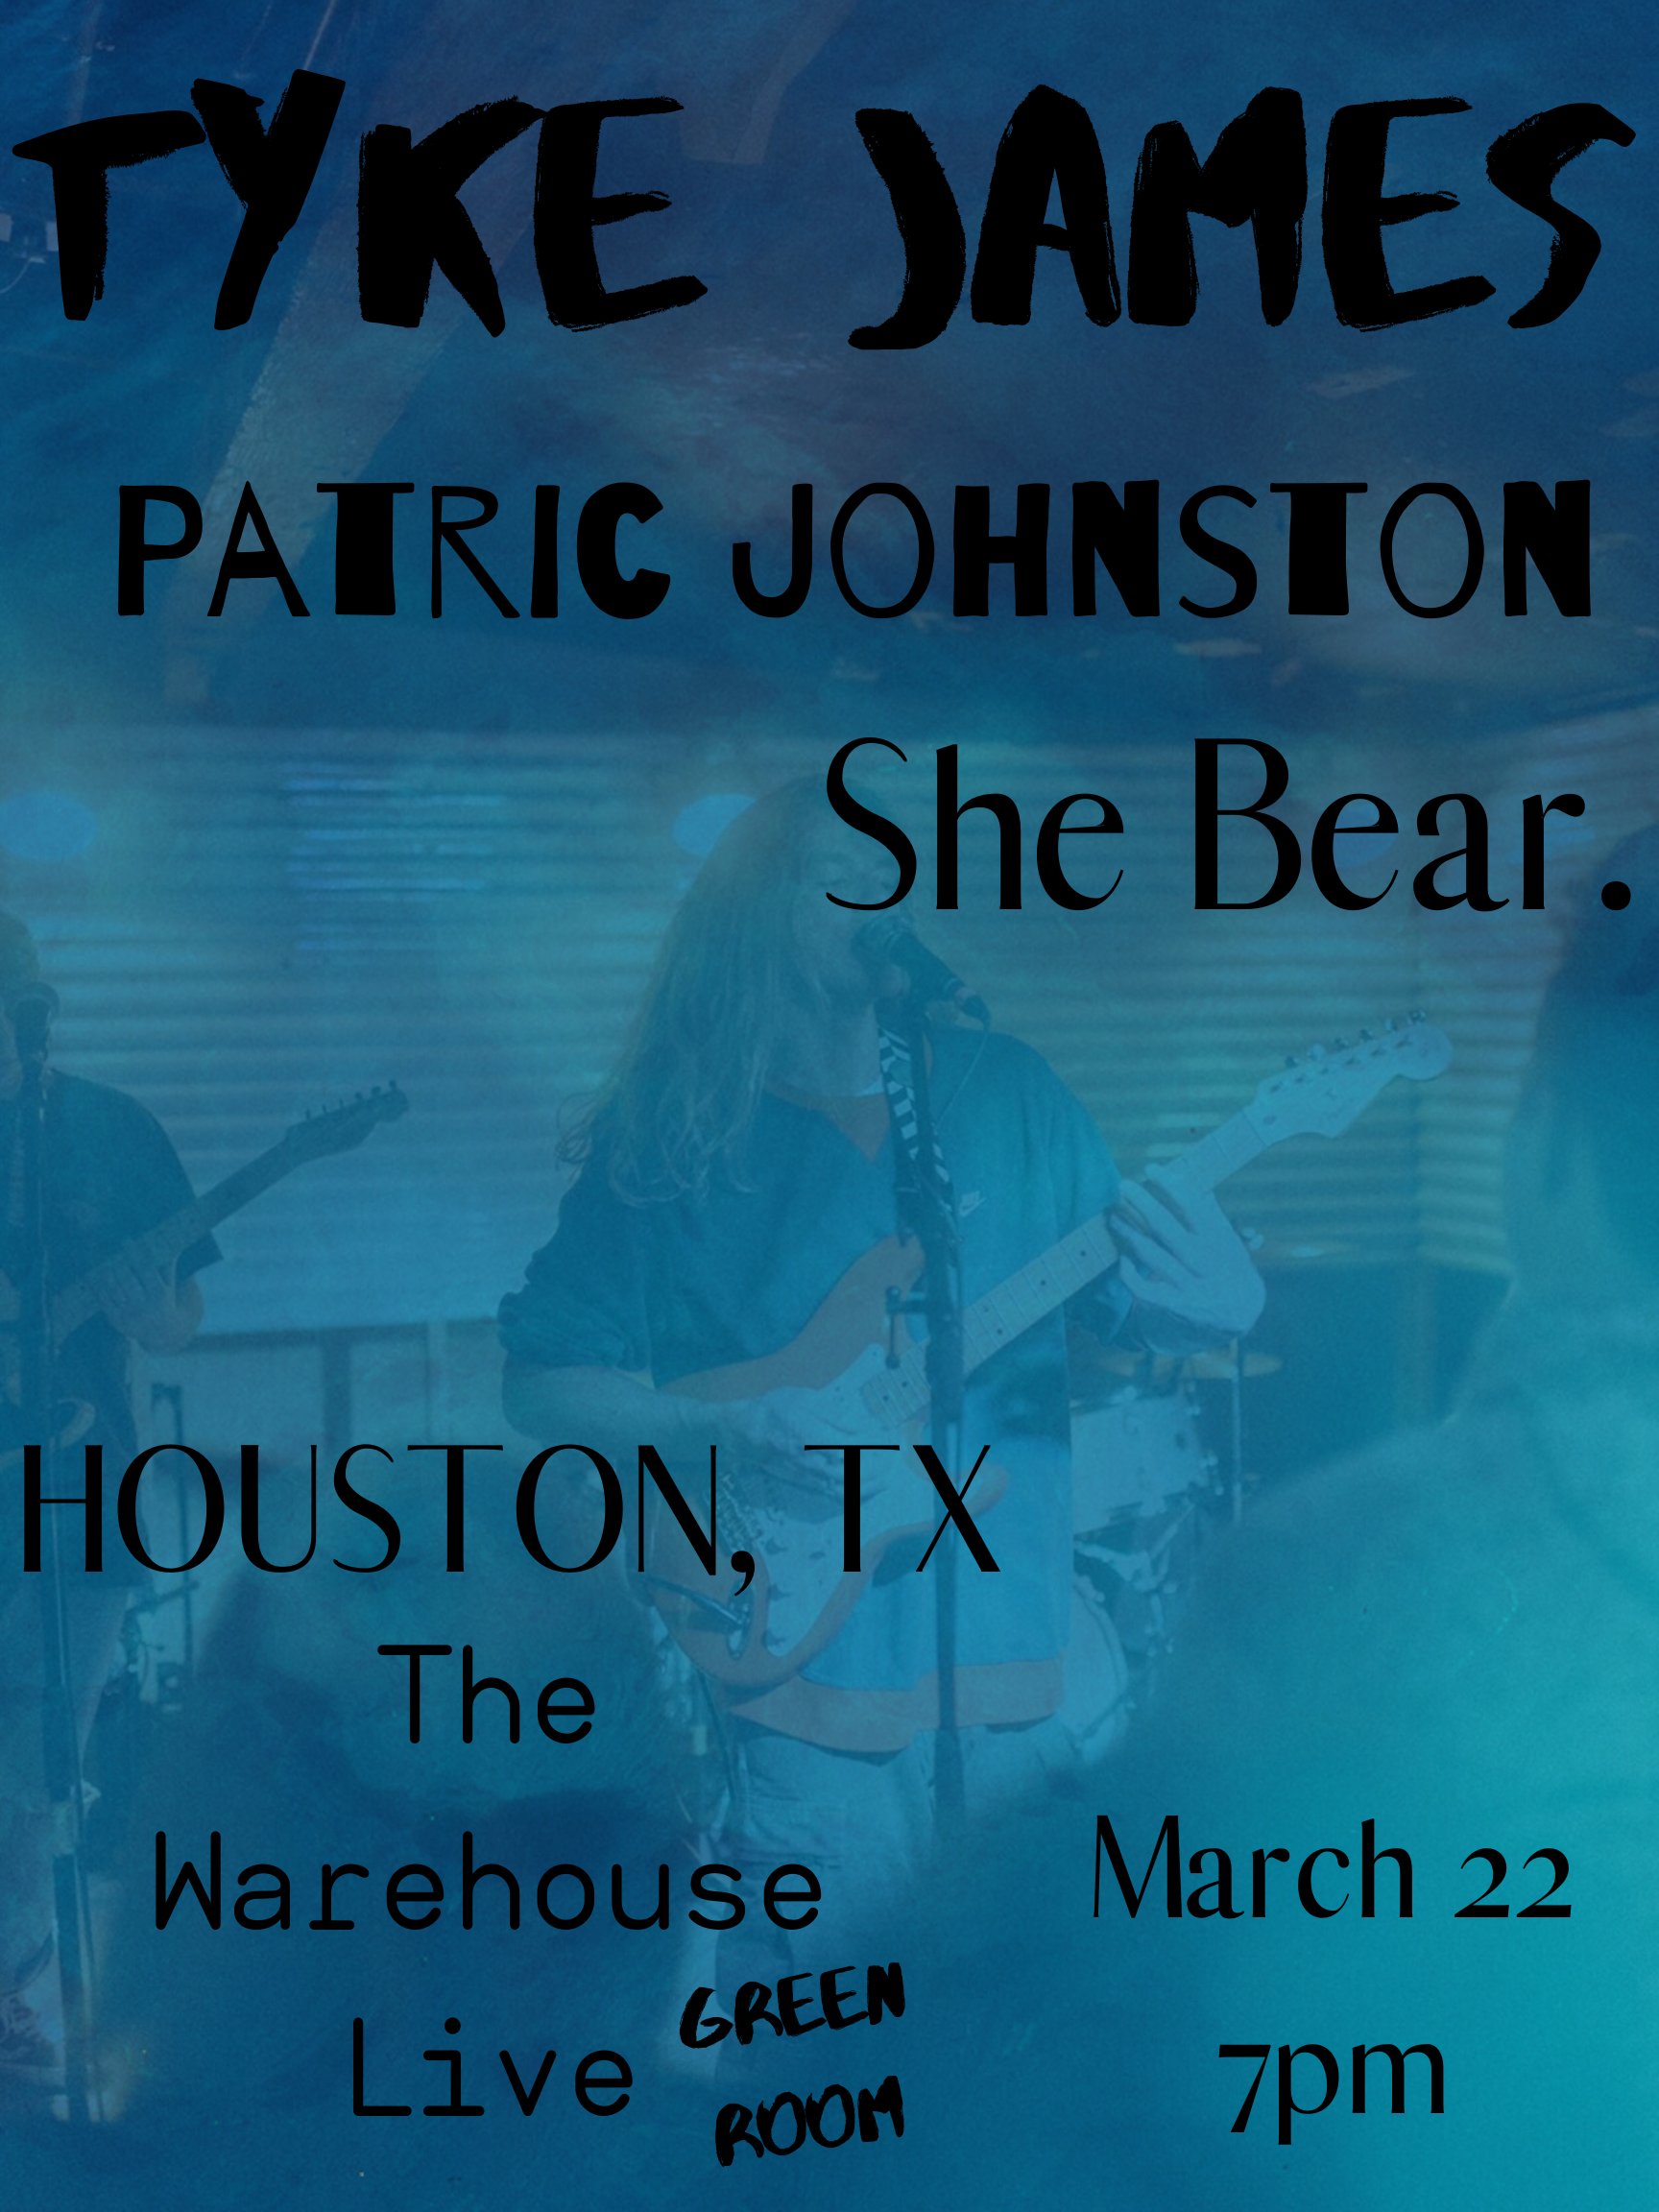 TYKE JAMES / SHE BEAR / PATRIC JOHNSTON